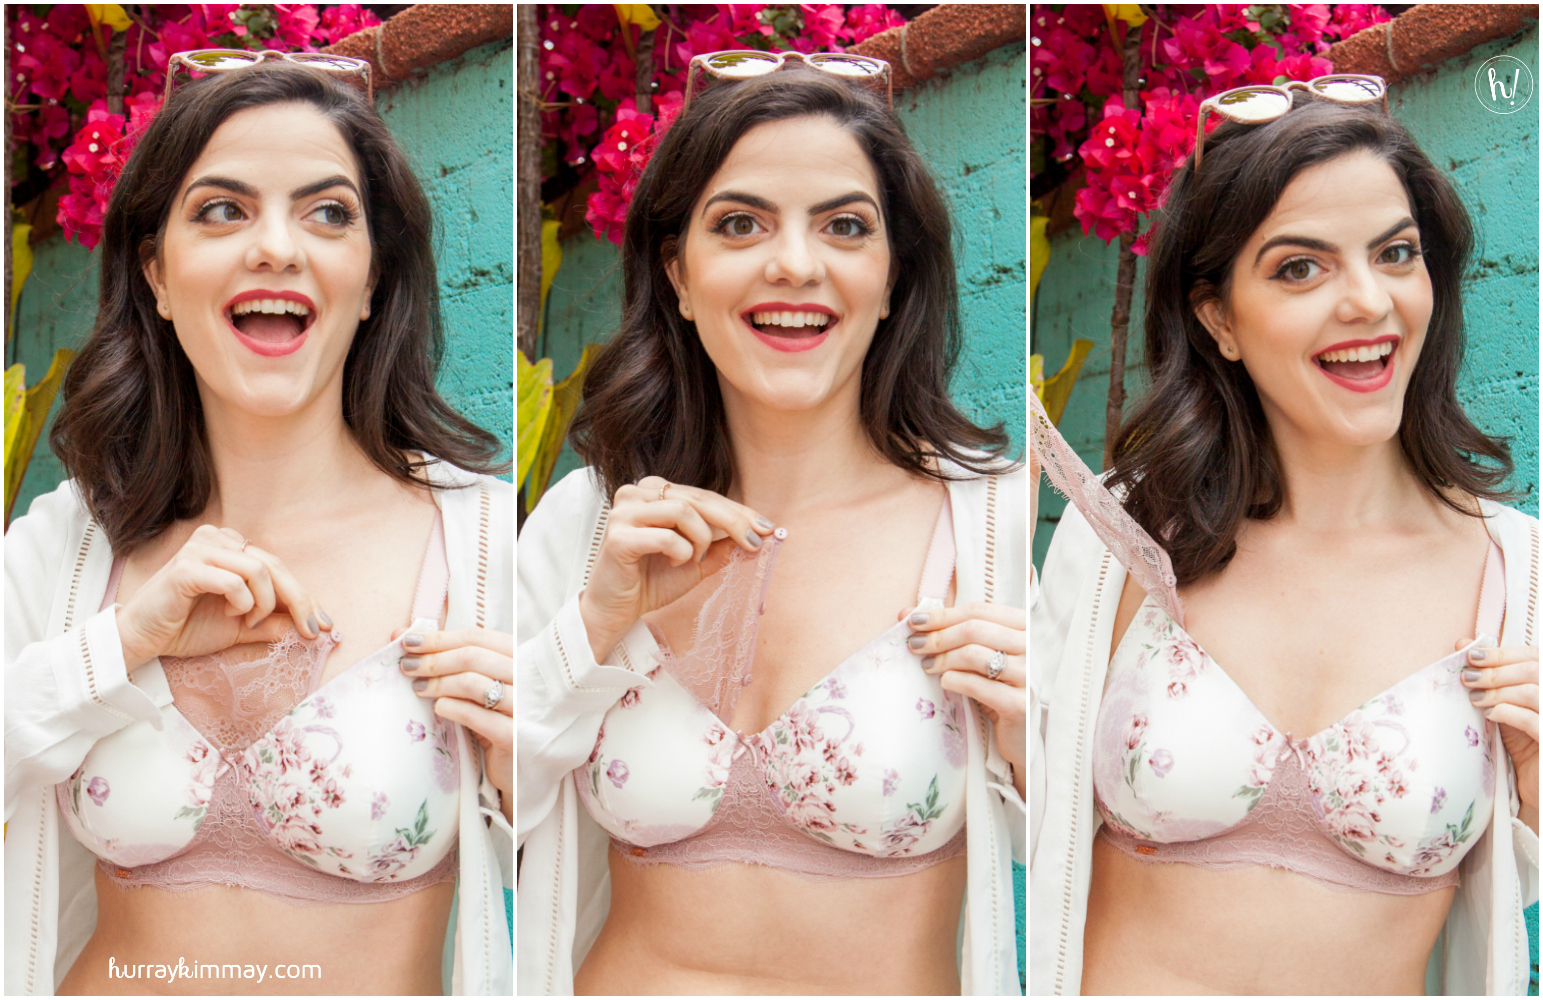 Find many unique styles of wire-free bras in the new Hurray Kimmay blog. Here Kimmay wears the Royce English Rose bra.